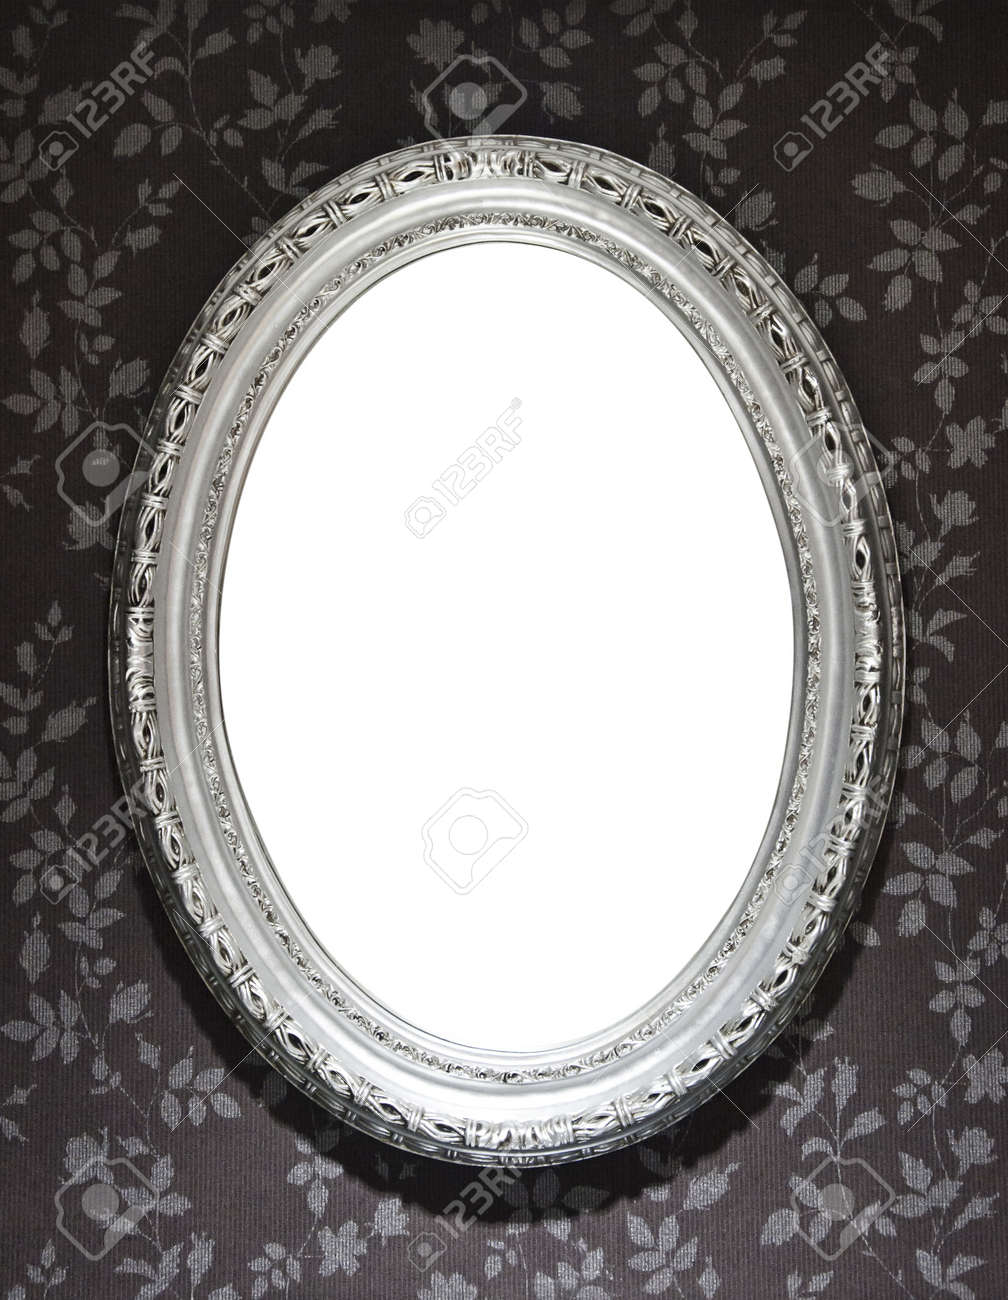 Blank Mirror Frame On A Wall Covered With Floral Wallpaper Clipping